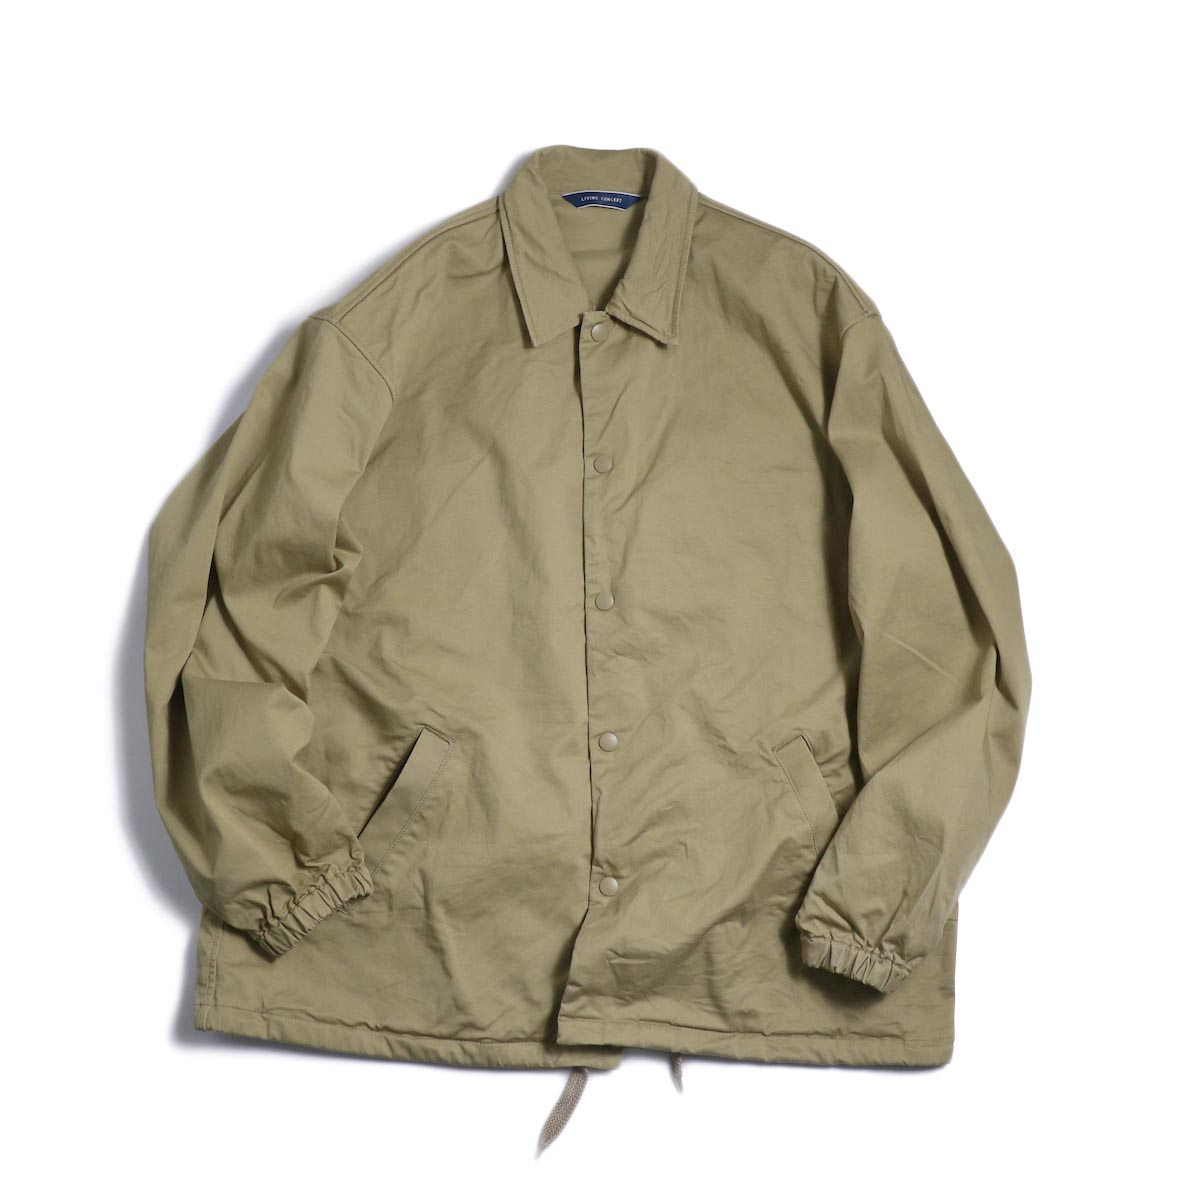 Living Concept / Coach Jacket -Beige